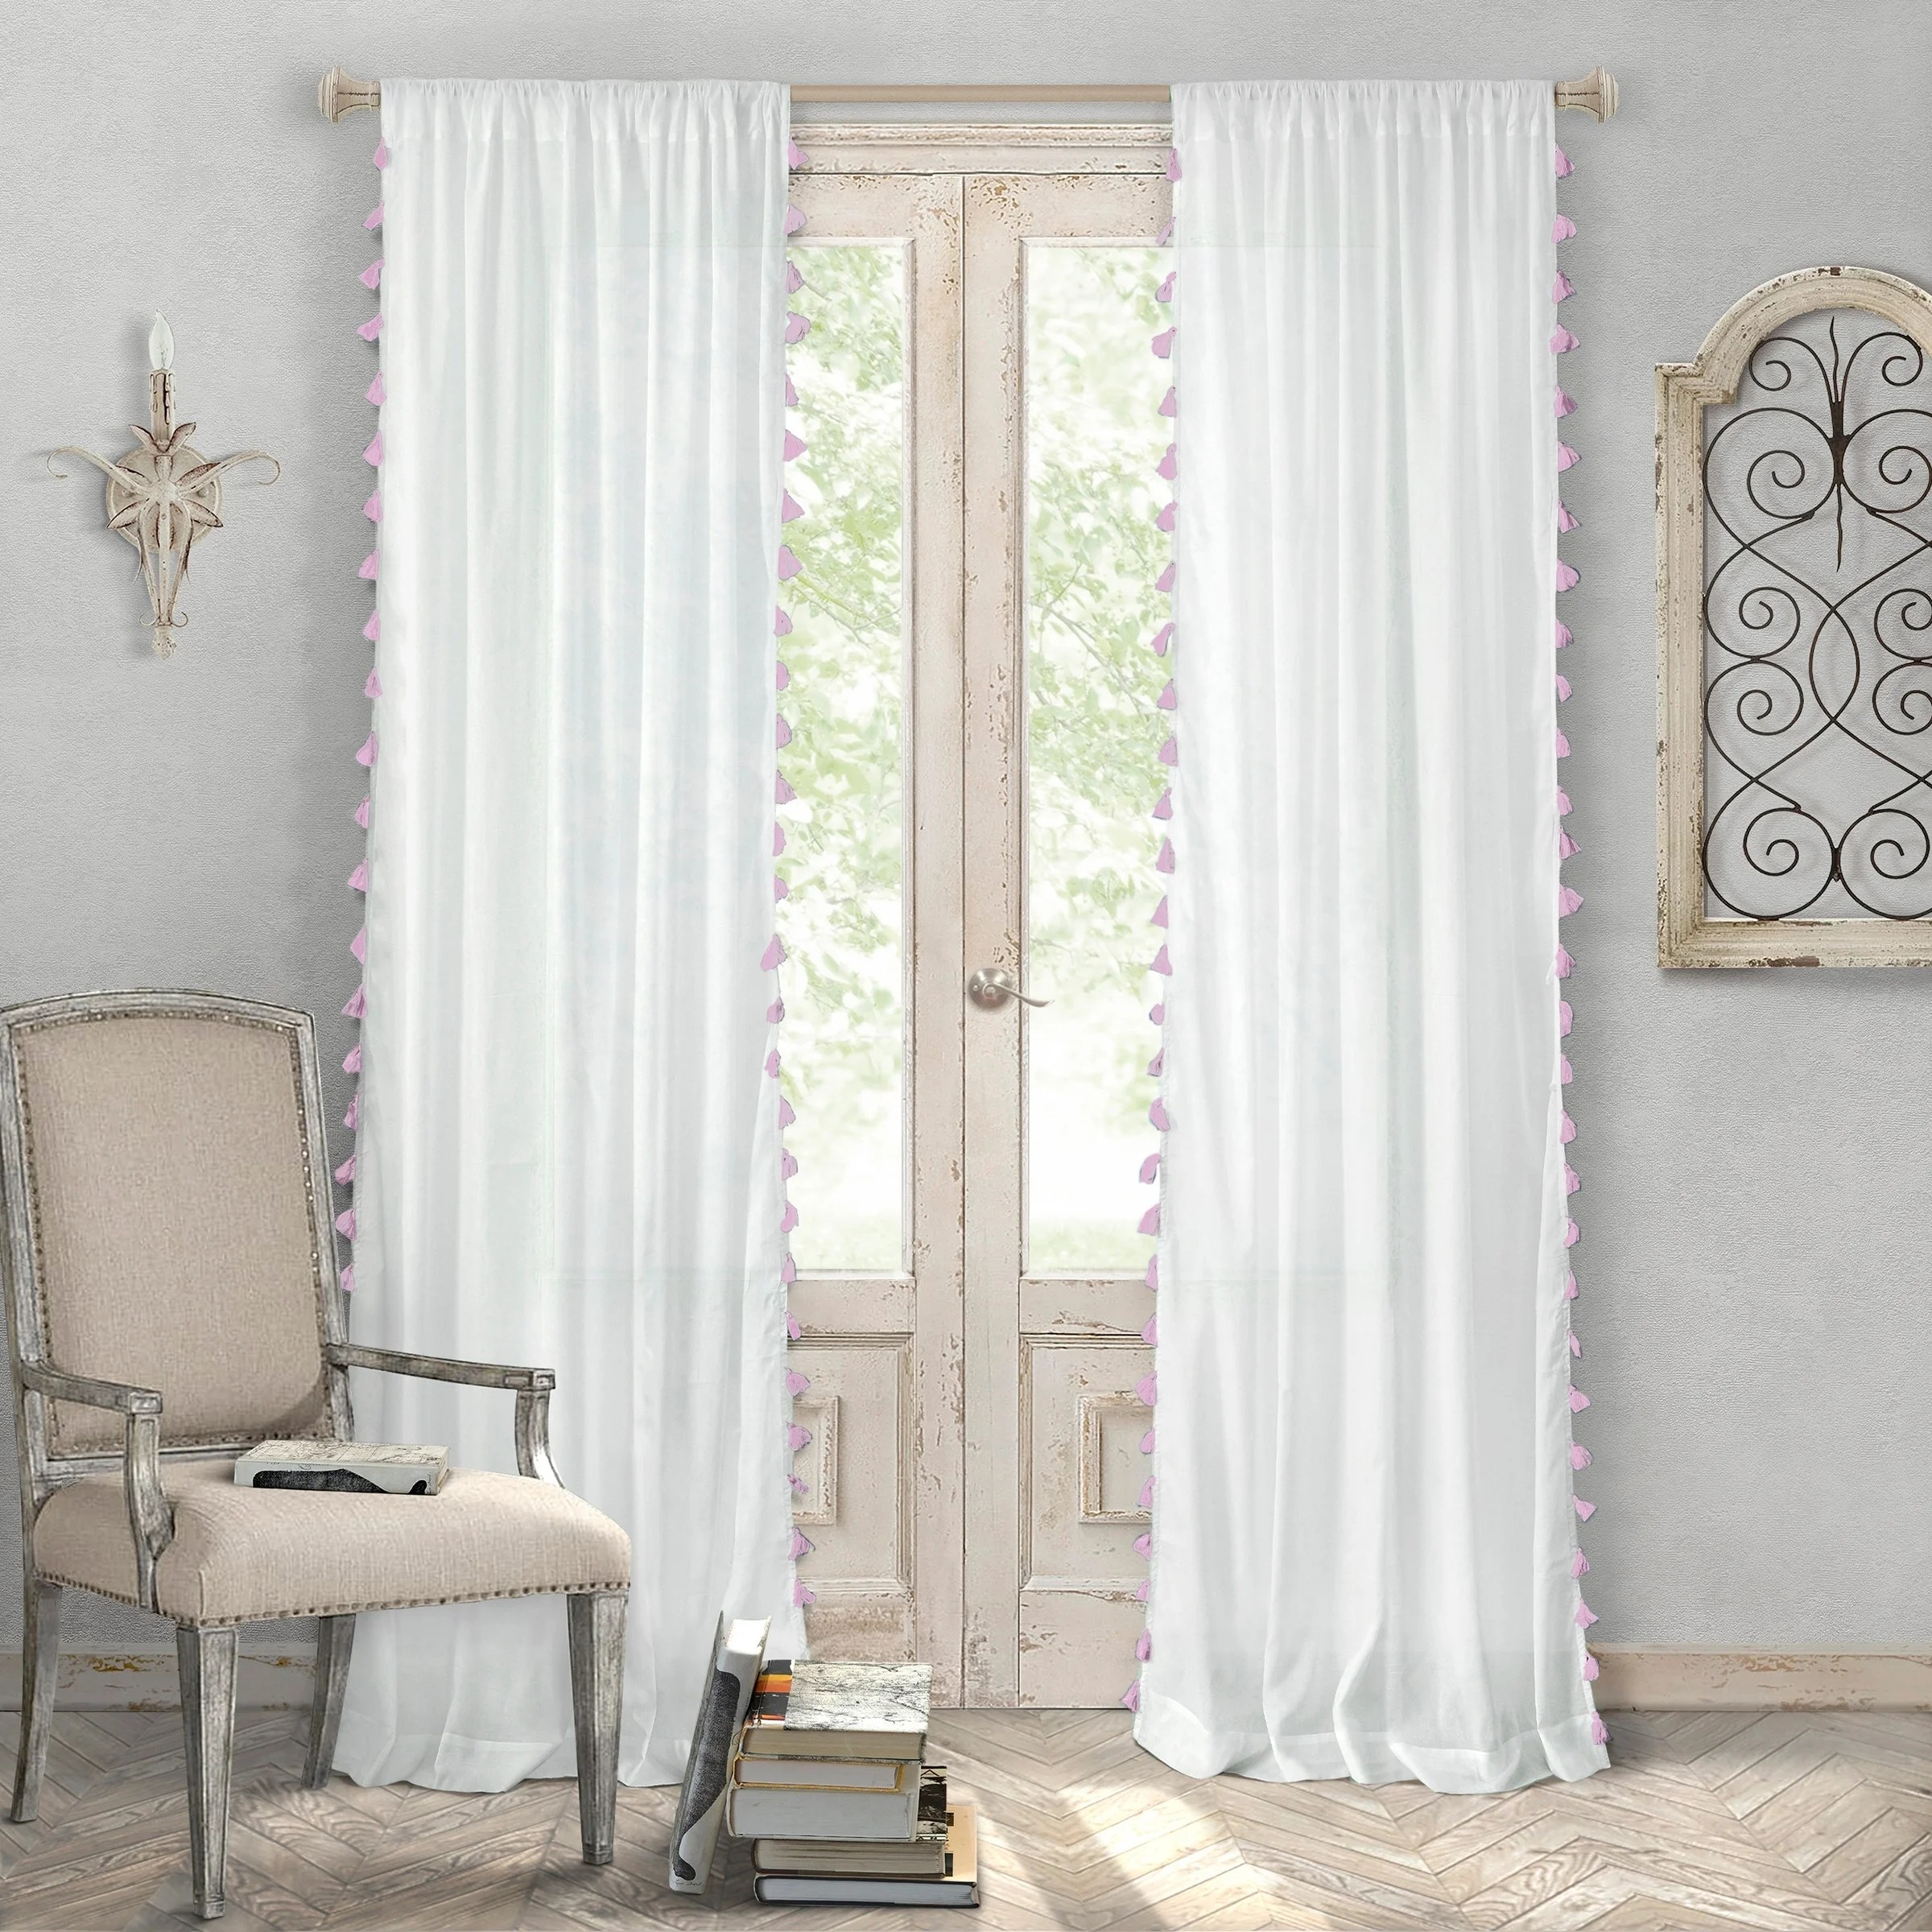 Cotton Curtain Panels Details About Elrene Bianca Tassel Cotton Curtain Panel